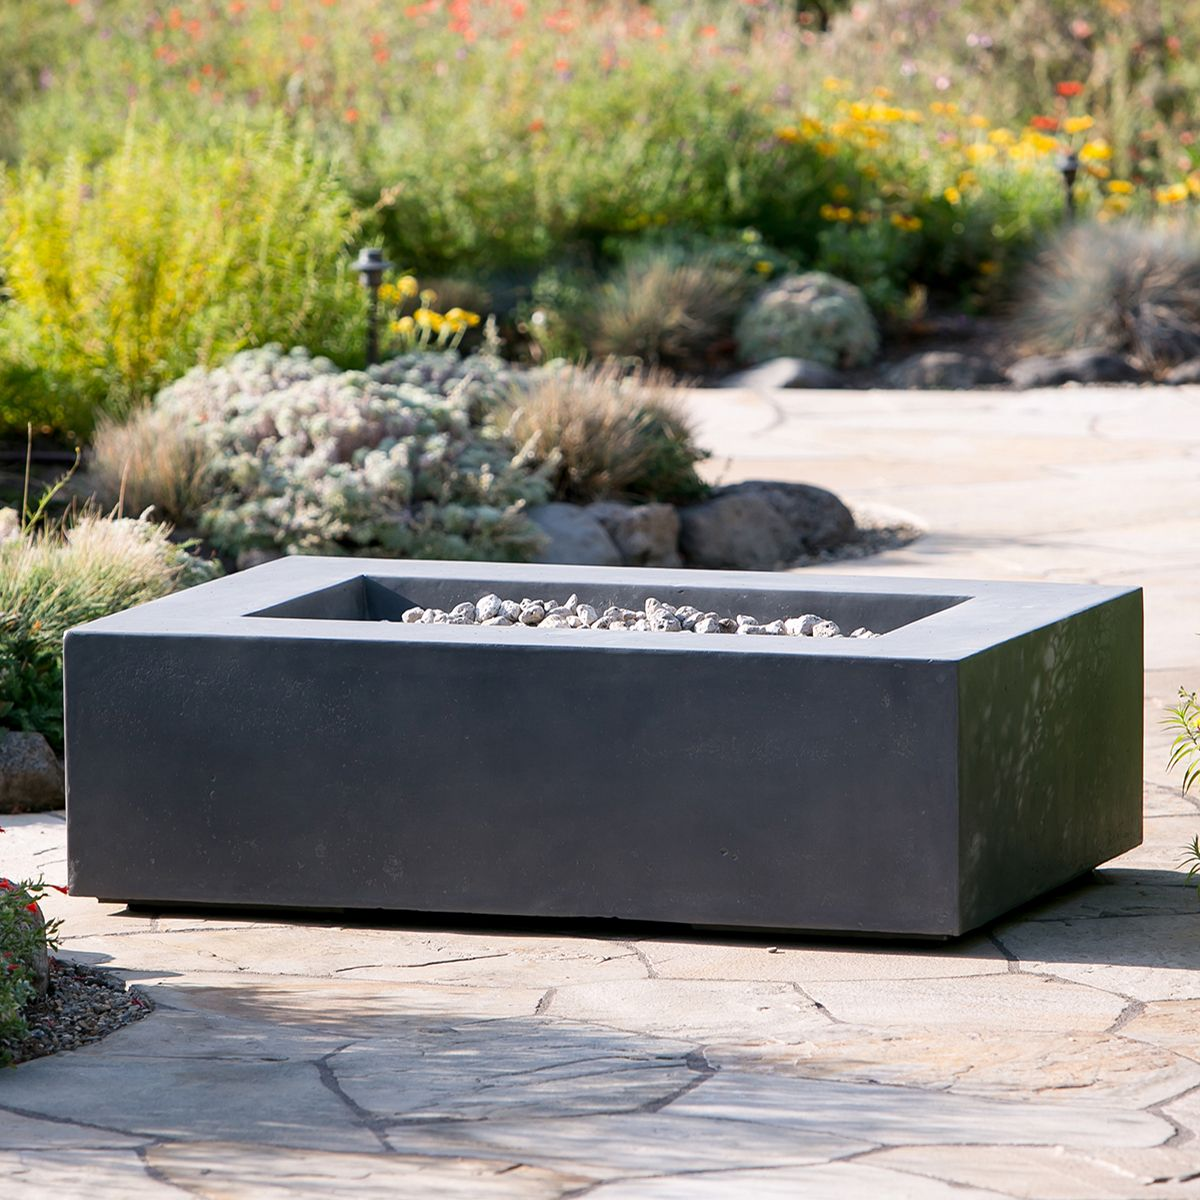 Coronado Rectangular Firepit In Pewter 51 Terra Outdoor Living Fire Pit Essentials Fire Pit Backyard Rustic Fire Pits